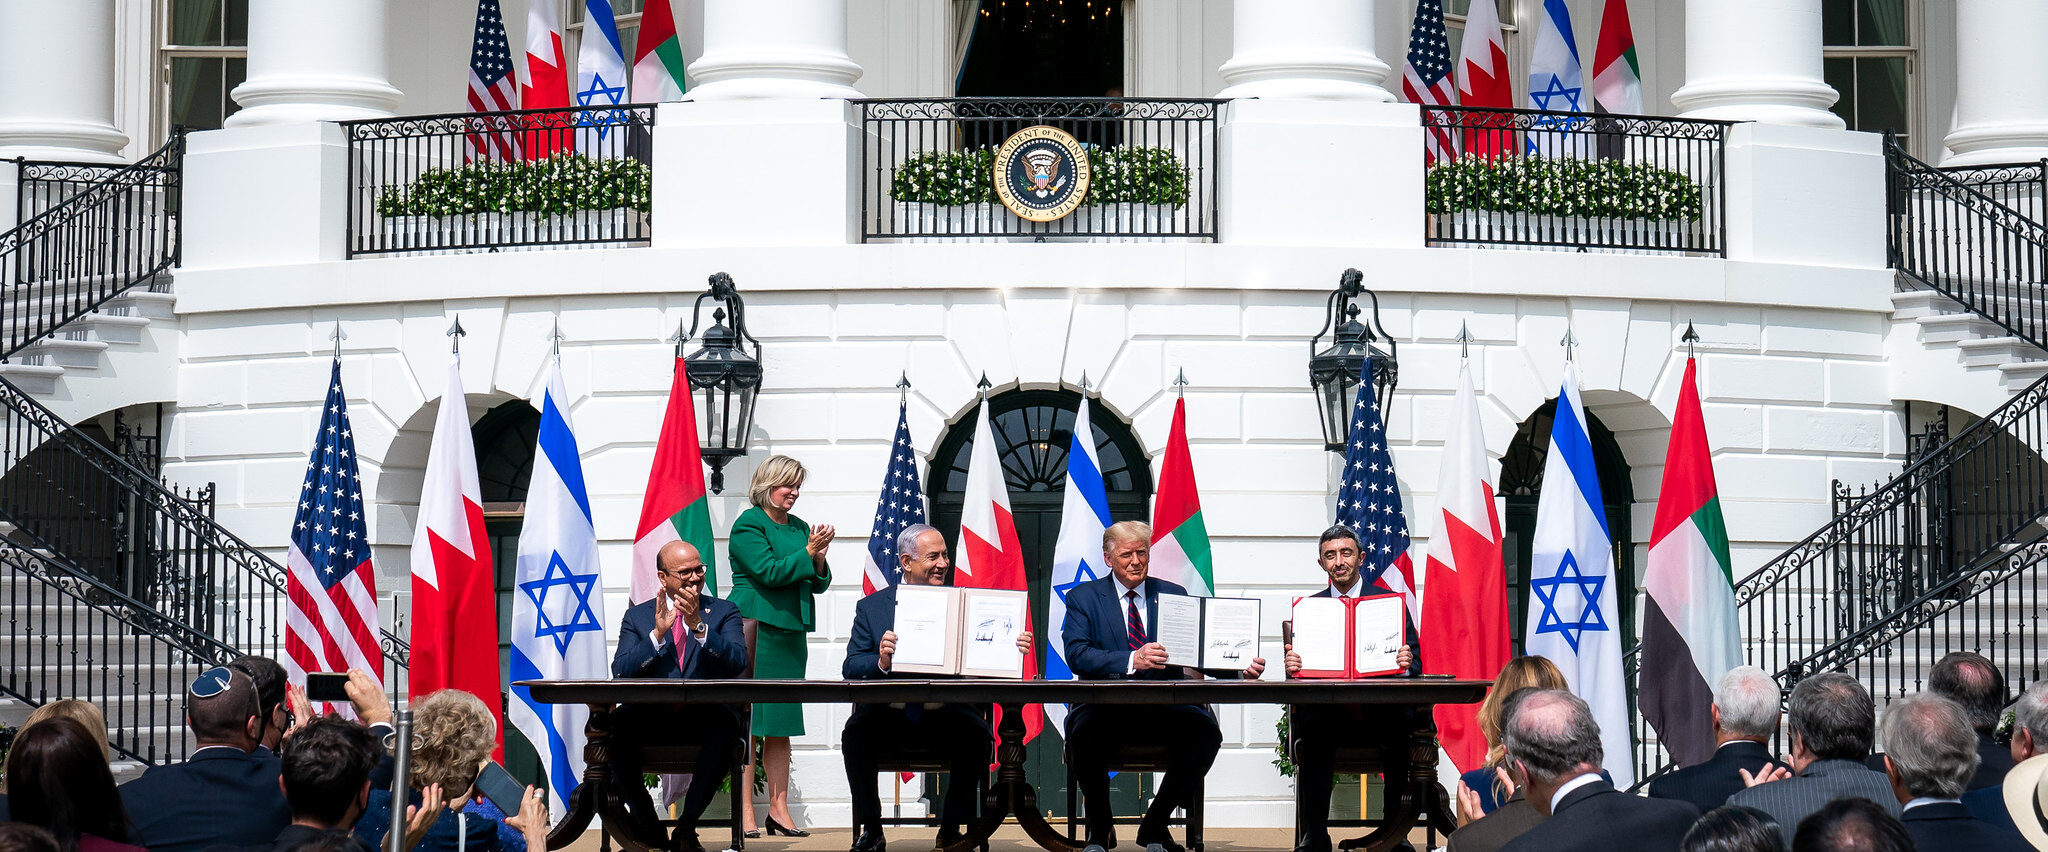 President Trump and The First Lady Participate in an Abraham Accords Signing Ceremony